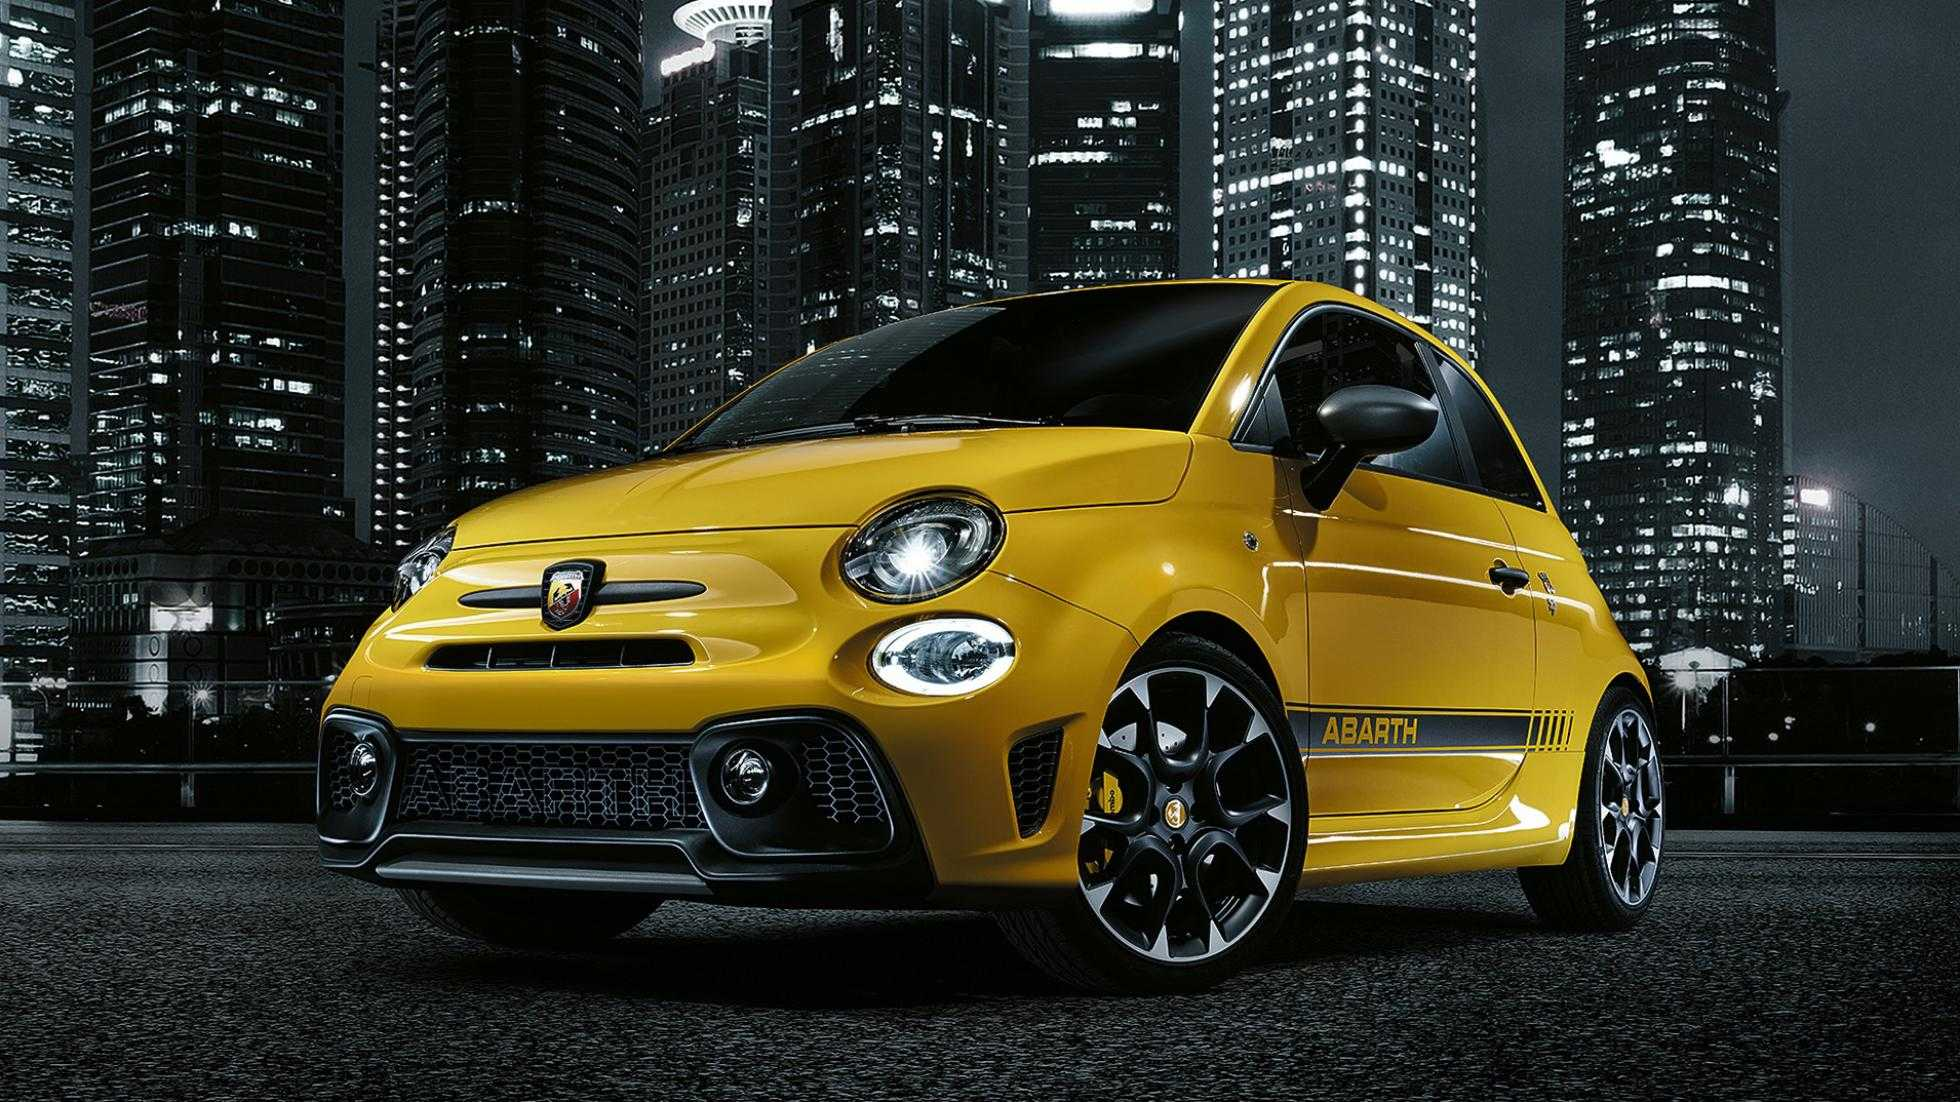 Abarth 595 Hot Hatch Gets Improved Tech Features and Power Boost